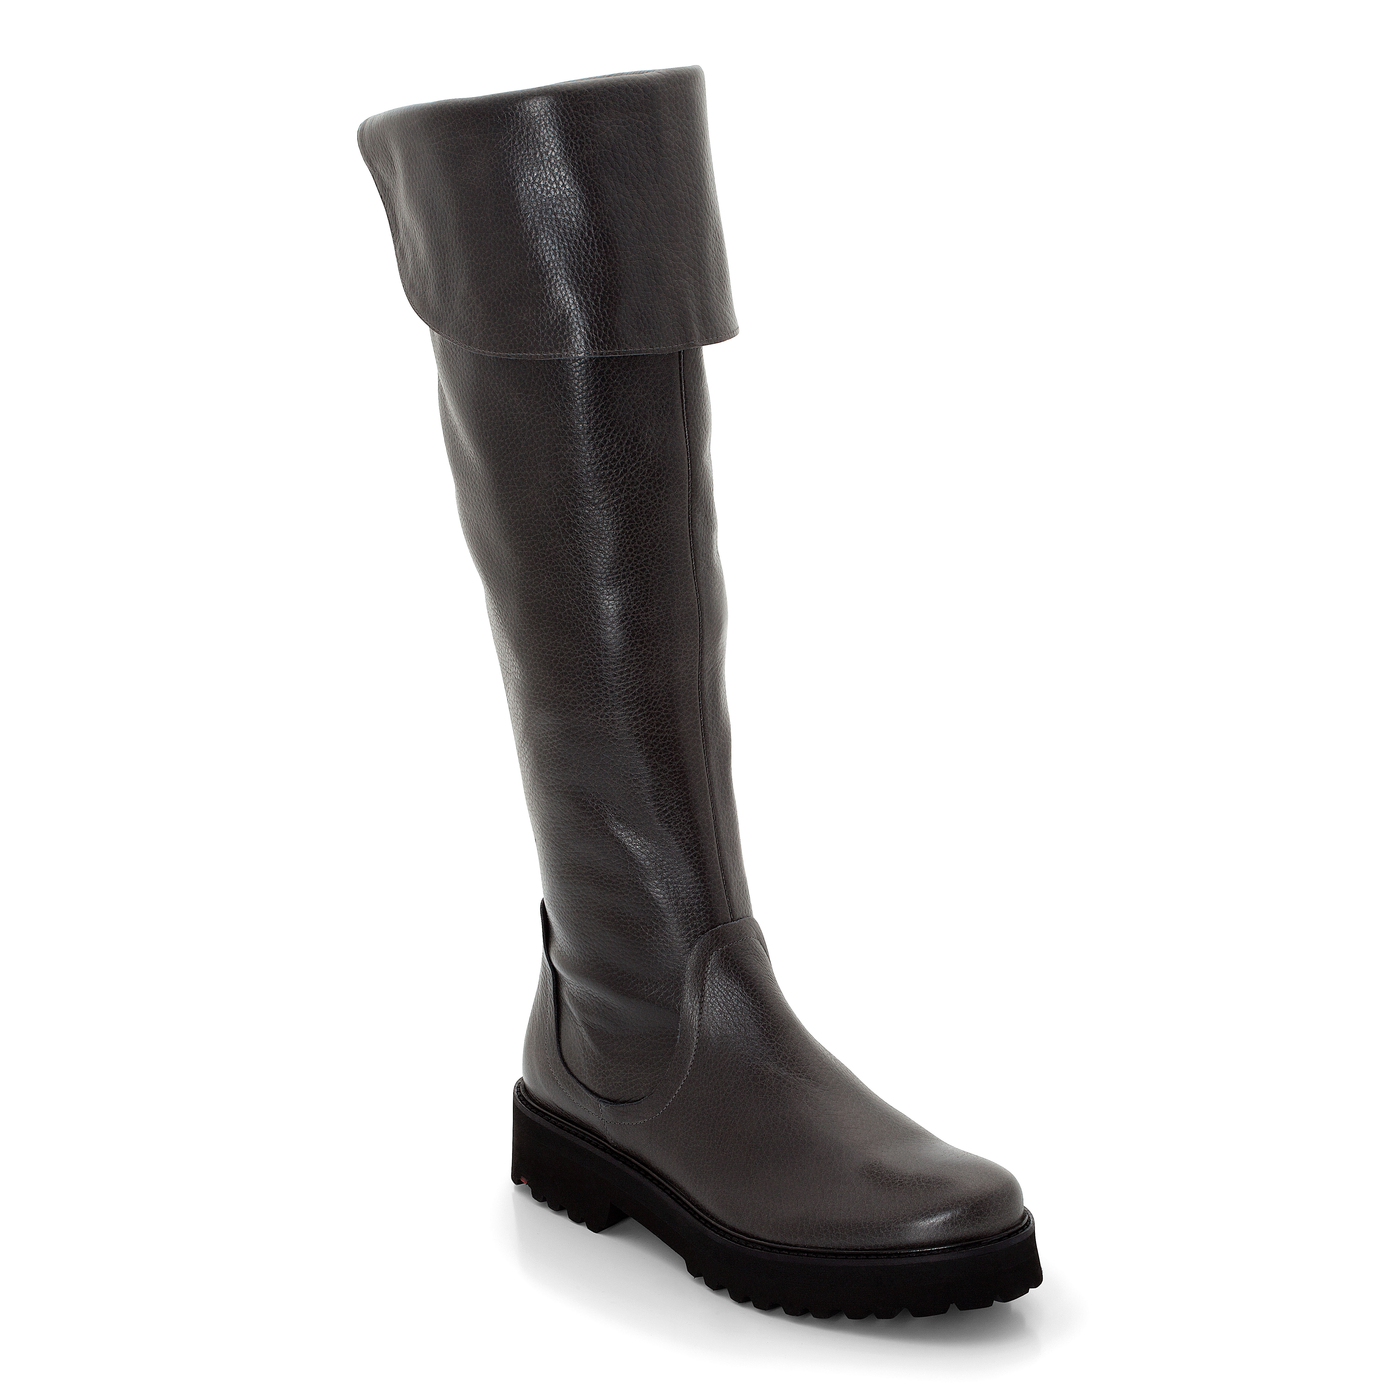 943b88d5a43f3 Outlet Stiefel